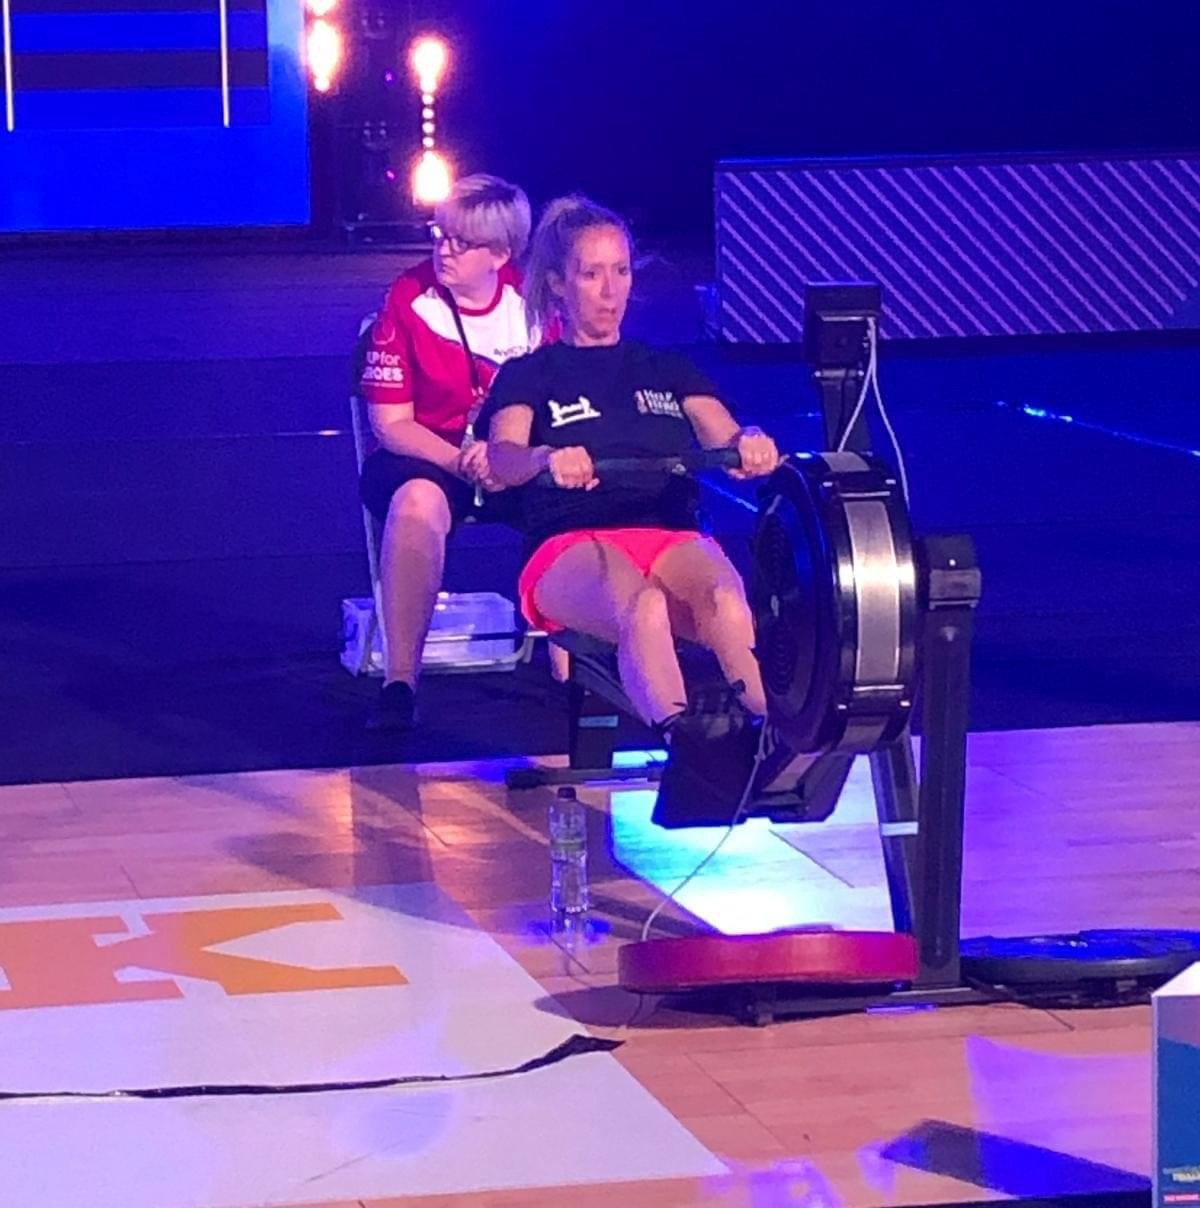 A woman competes on a rowing machine in a large hall